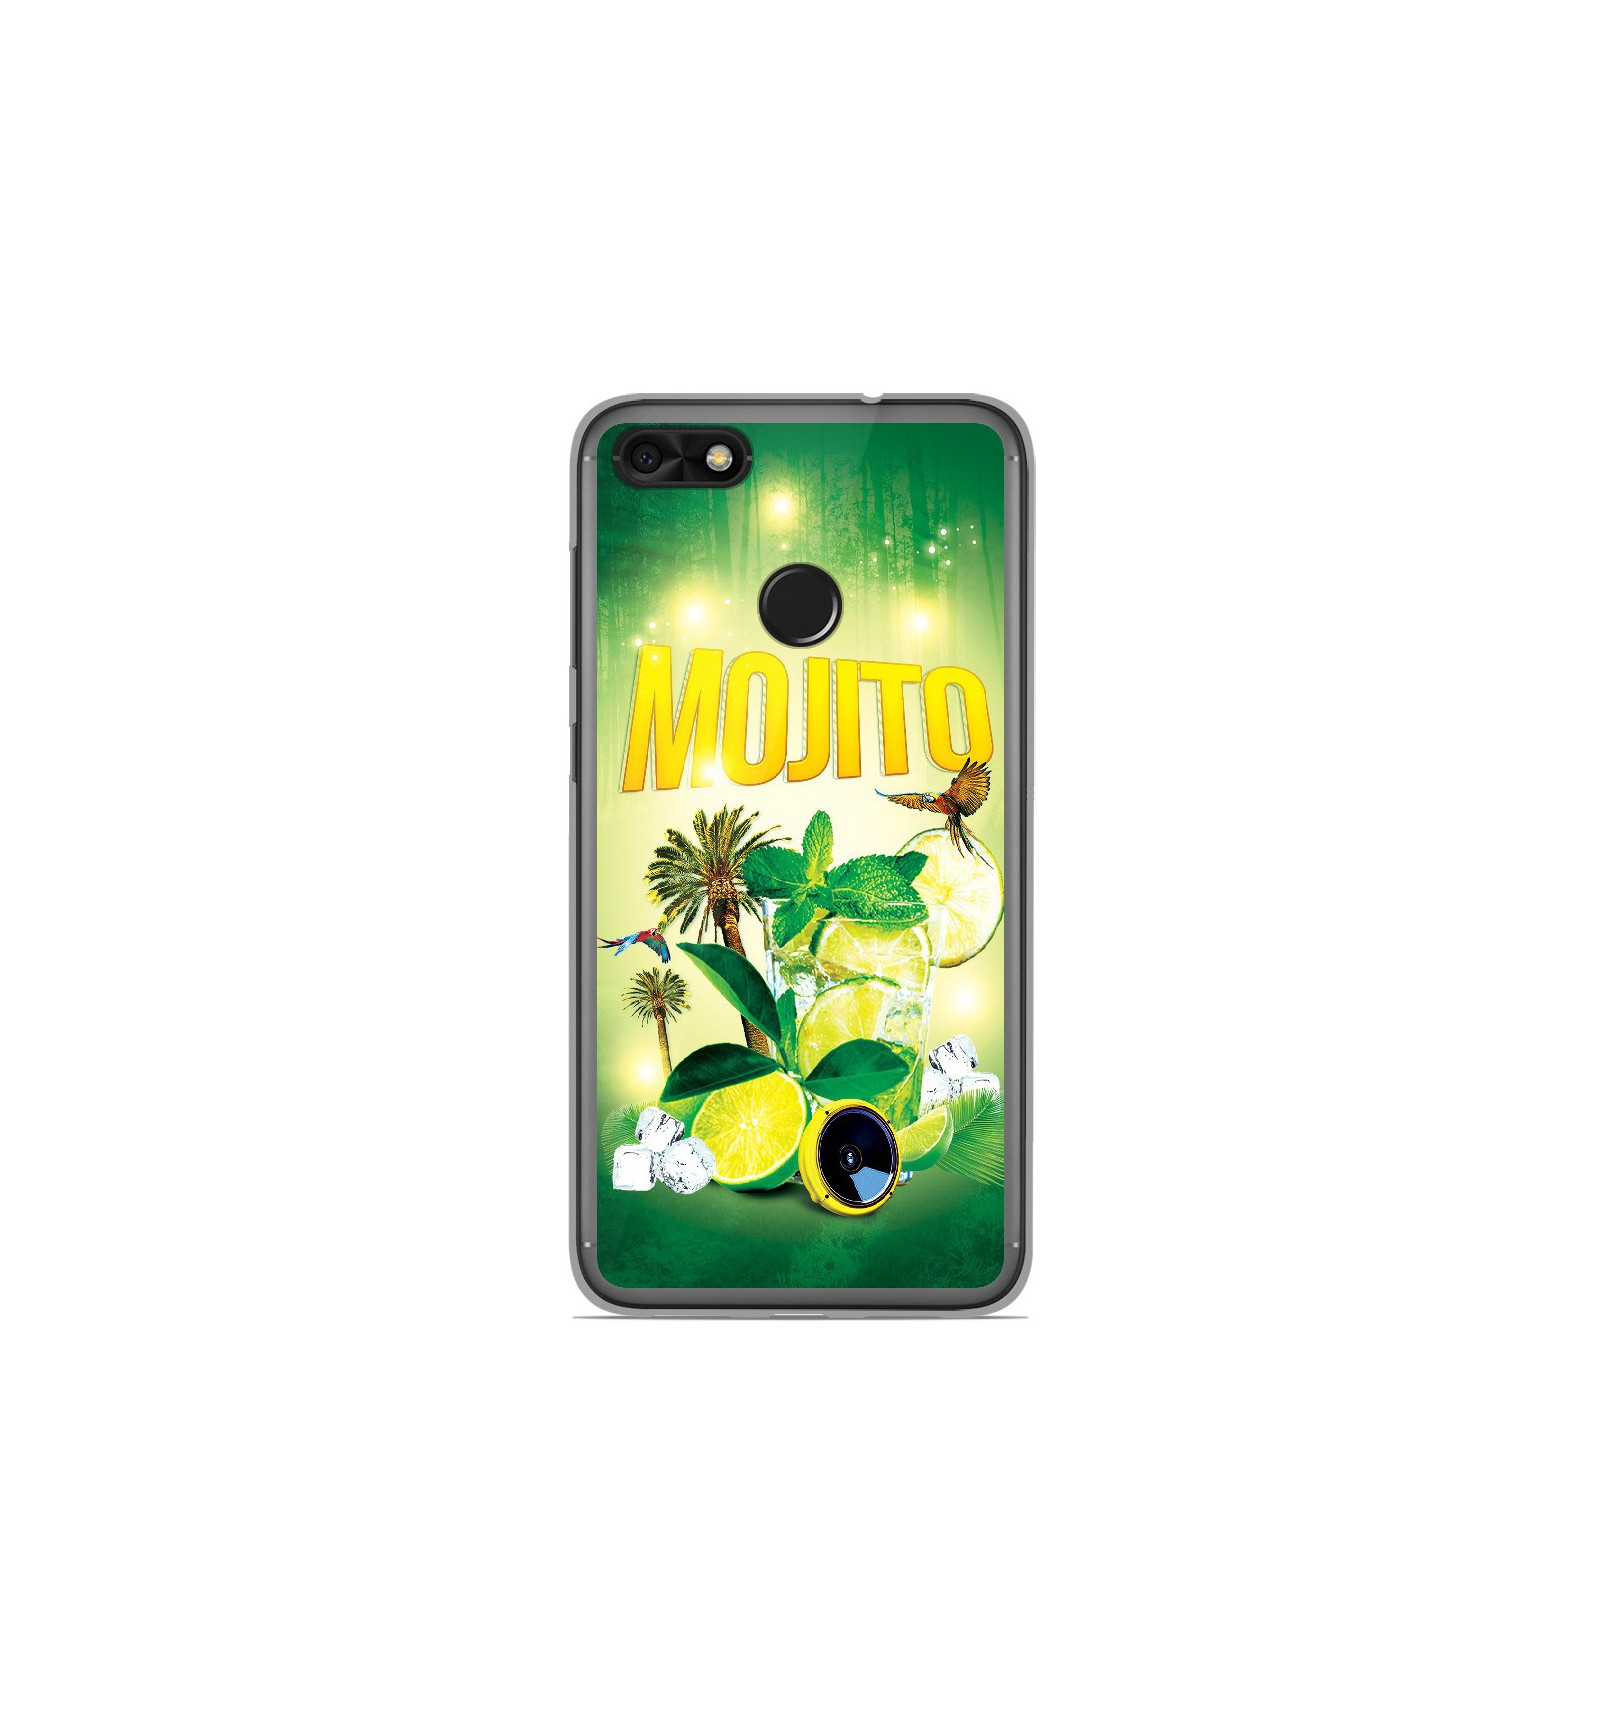 coque en silicone huawei y6 pro 2017 mojito for t. Black Bedroom Furniture Sets. Home Design Ideas